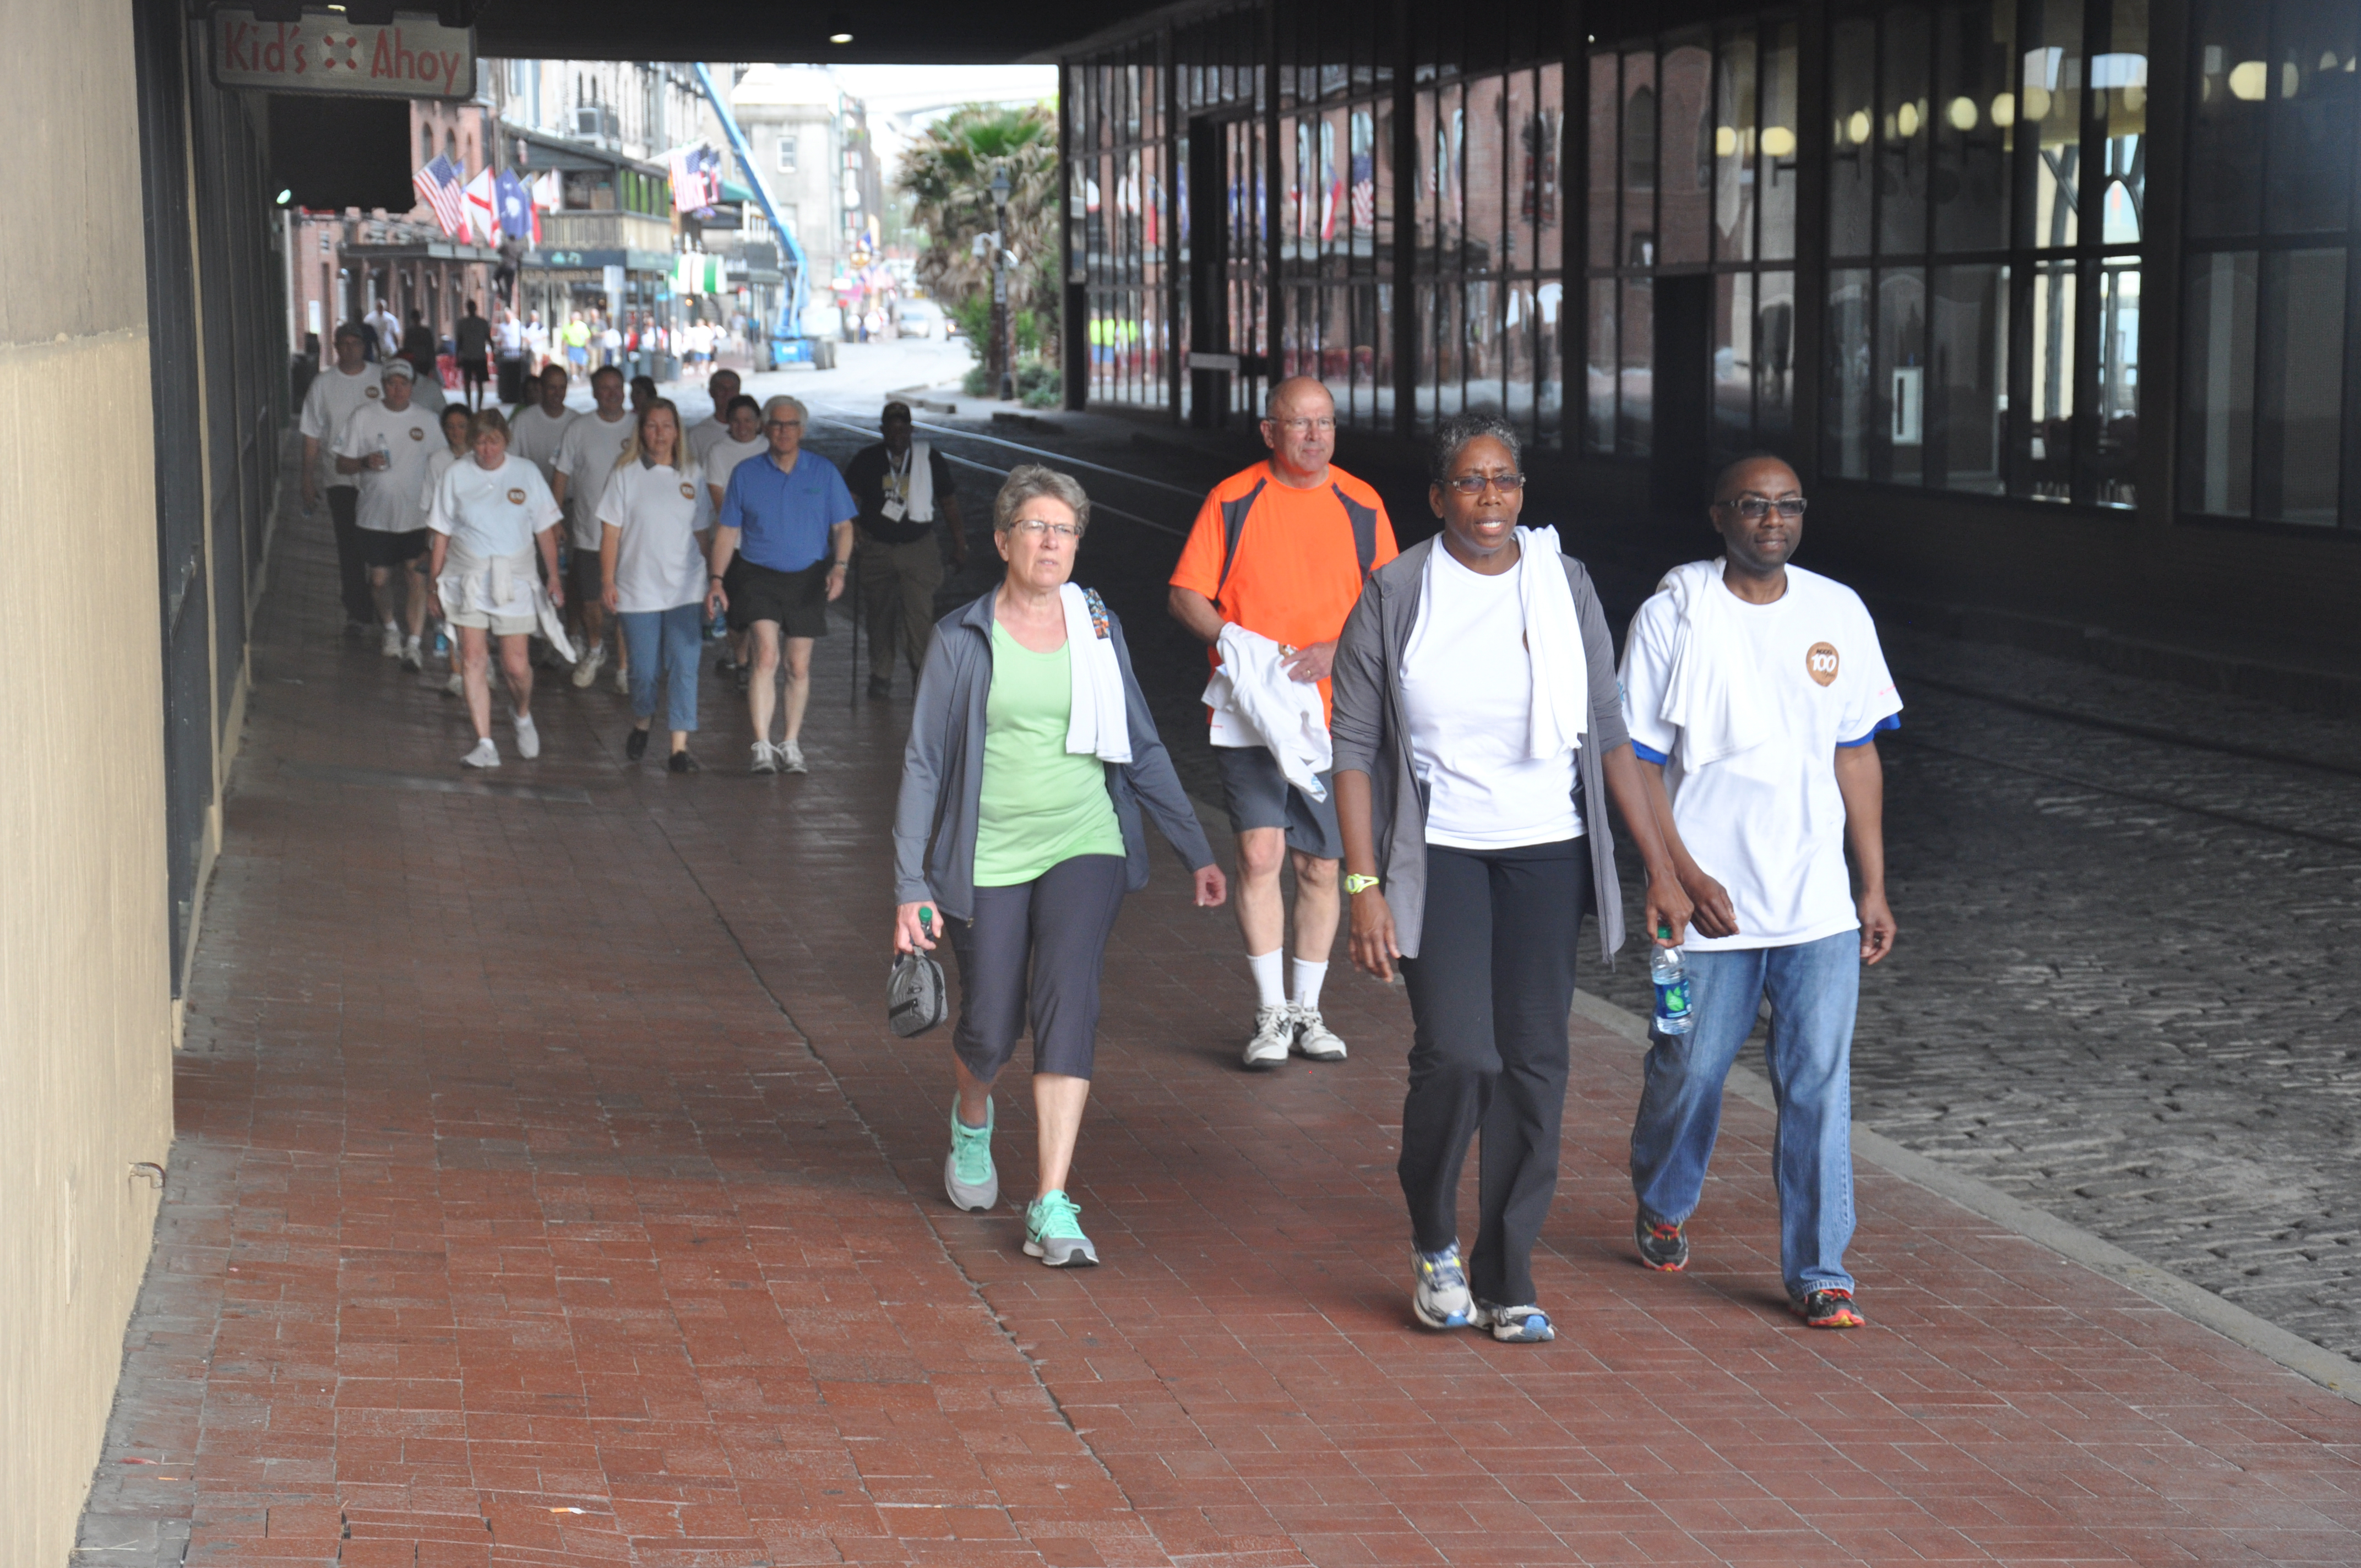 Georgia county commissioners and staff complete the Wellness Walk, sponsored by Walk Georgia, The Coca-Cola Foundation, Association County Commissioners of Georgia (ACCG) and Local Government Risk Management Services, Inc., on Savannah's River Street Monday morning. The event was part of ACCG's annual conference, held in Savannah over the past week.